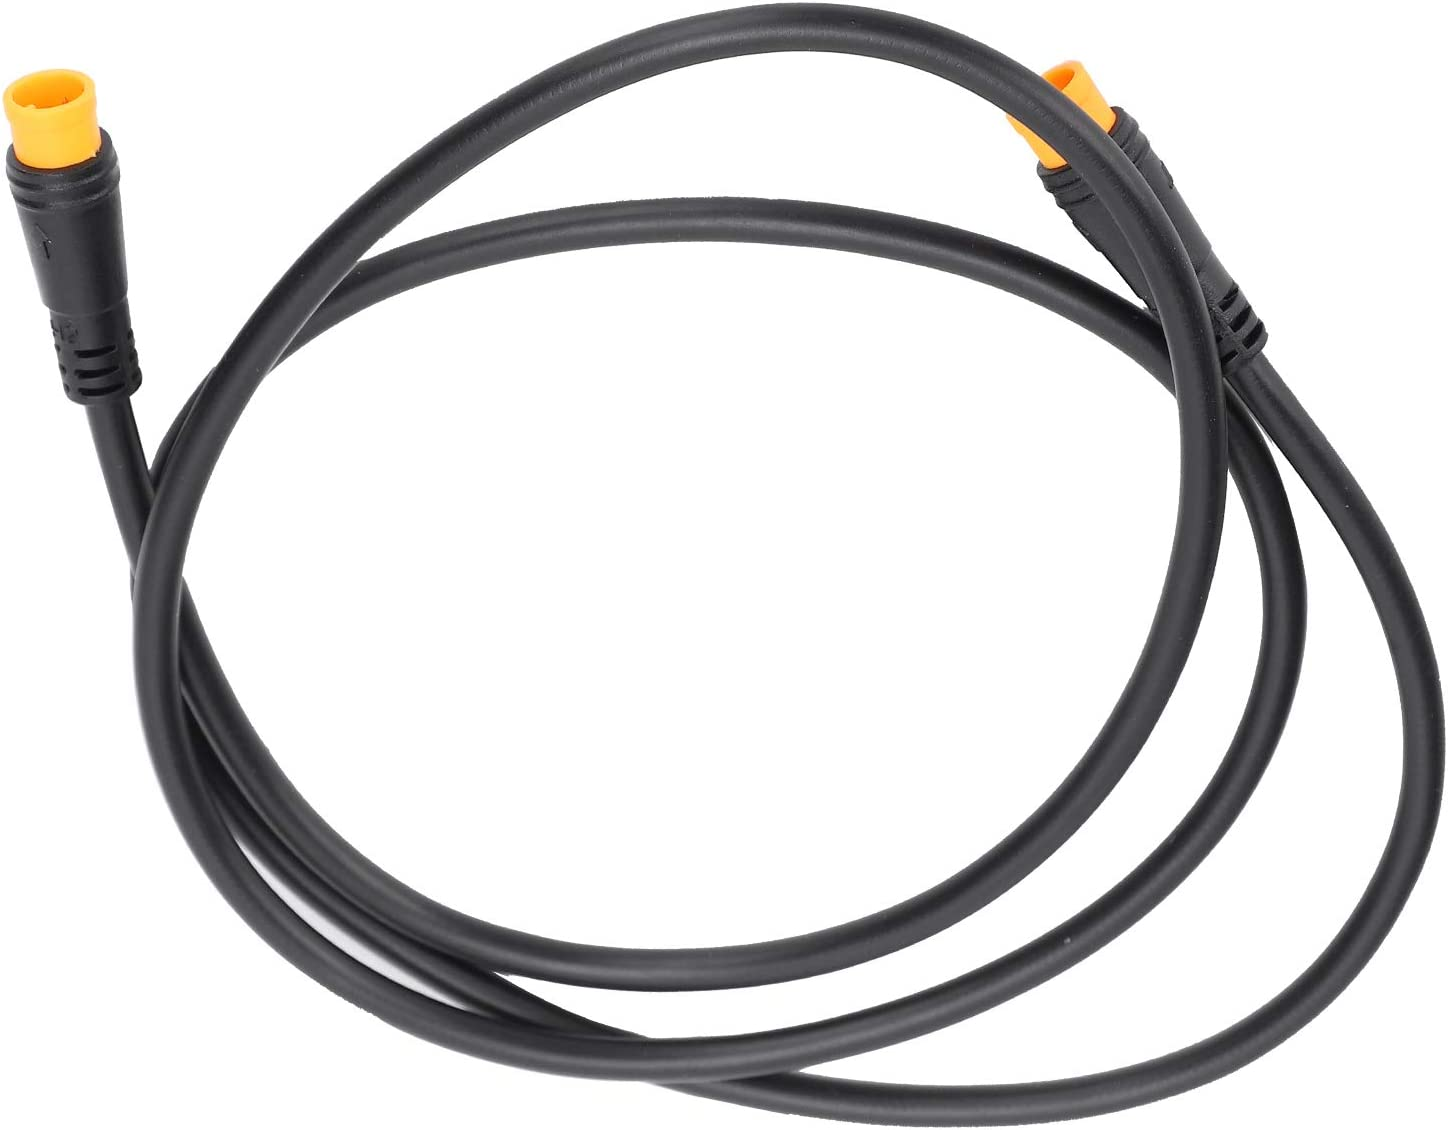 VGEBY discount KEENSO Connector Extension 3pin Cable Waterproof Conversi Kansas City Mall